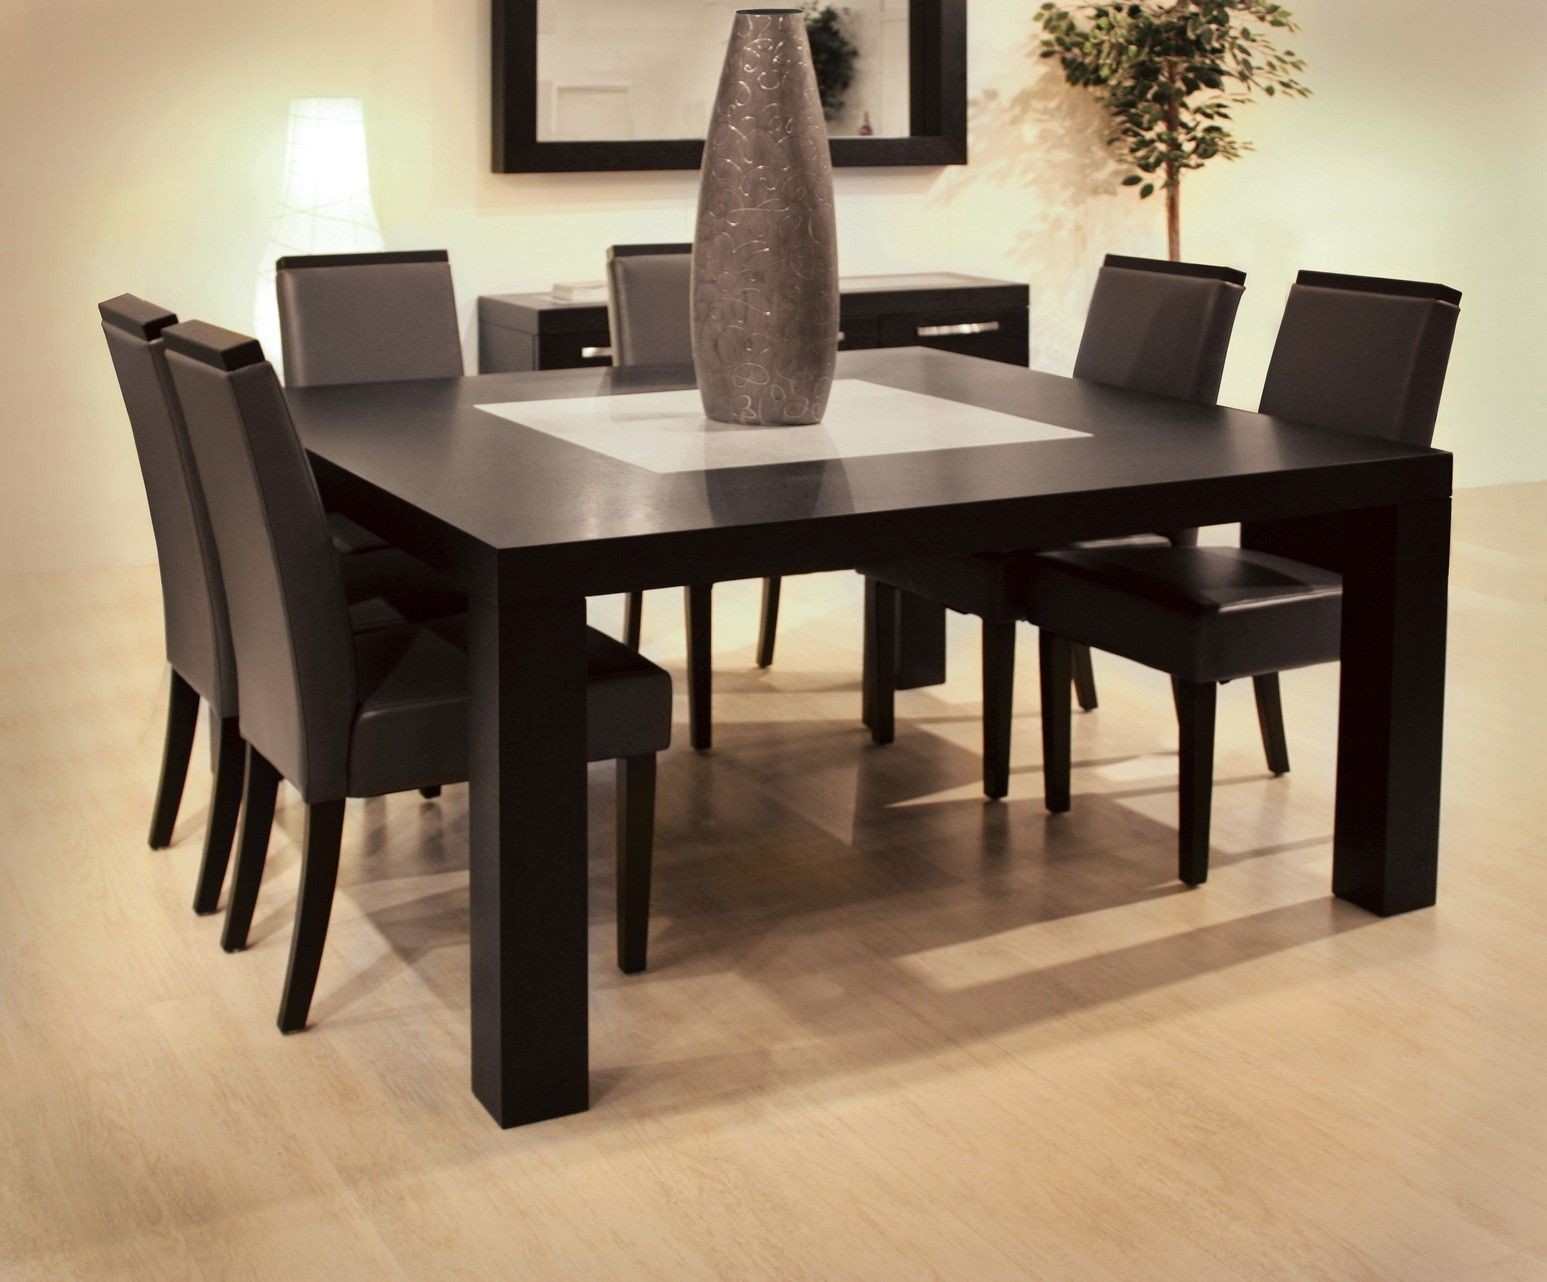 dining table sets wood modern. Interior Design Ideas. Home Design Ideas